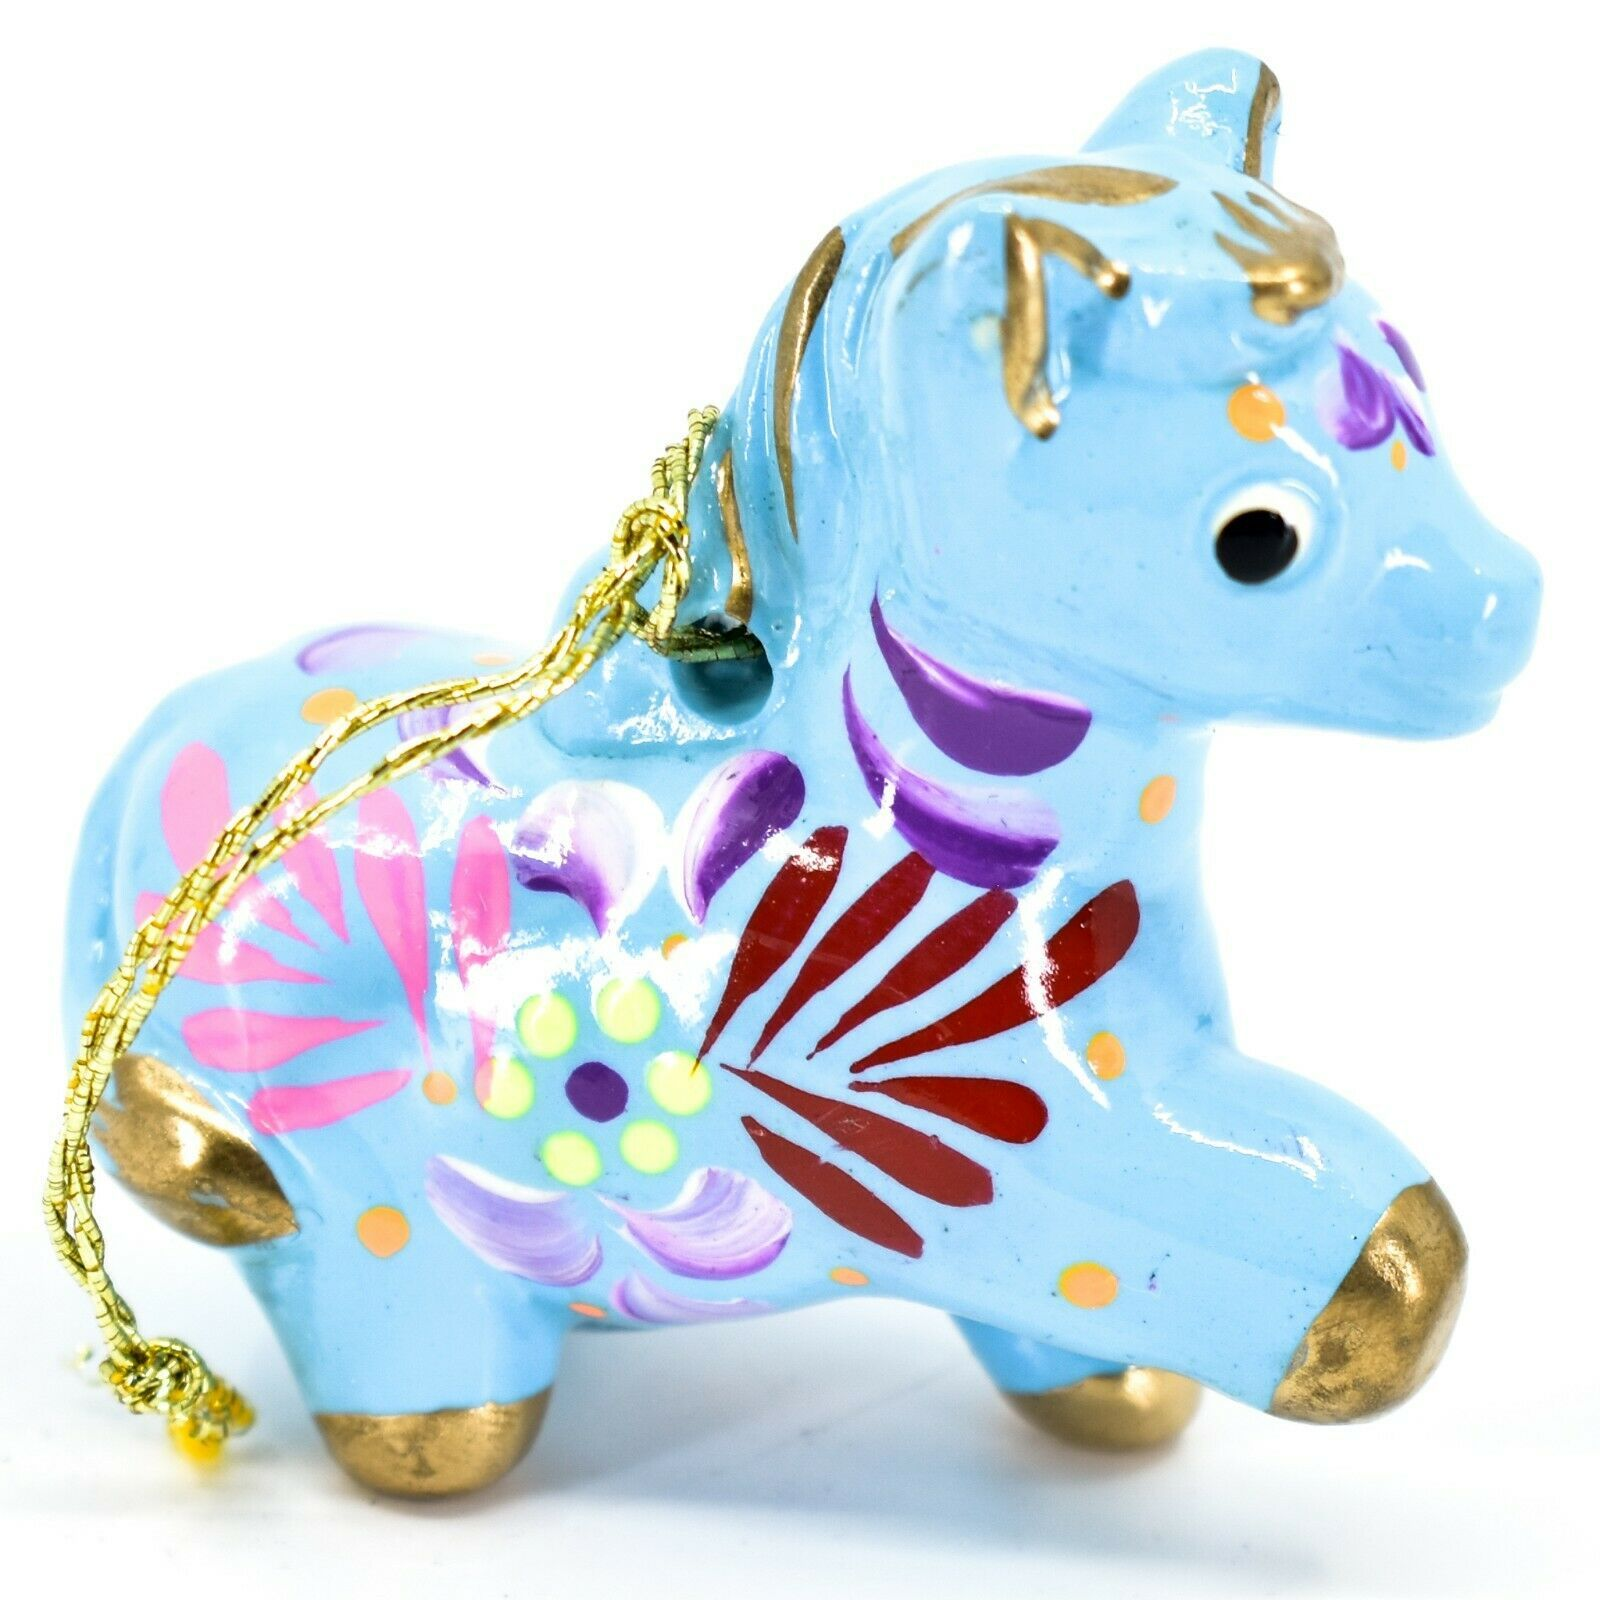 Handcrafted Painted Ceramic Blue Horse Country Farm Ornament Made Peru